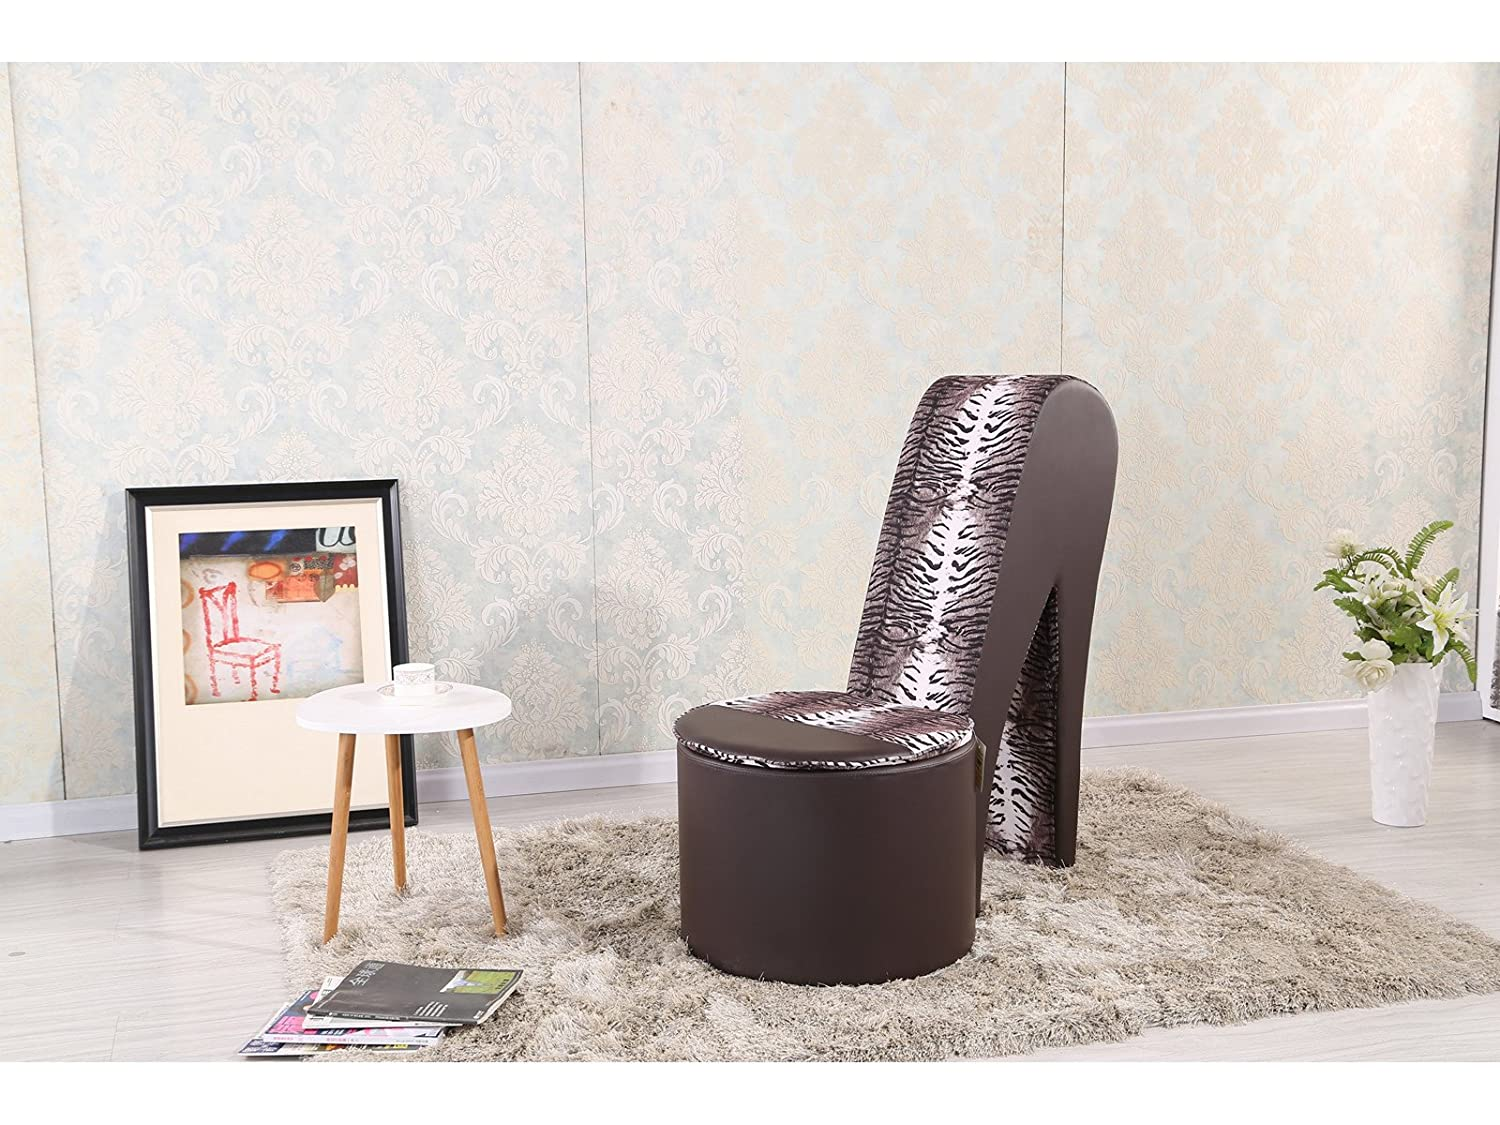 High heel chair for kids - Stiletto Shoe Chair With Storage Faux Leather Girls High Heel Bedroom Seat Brown Amazon Co Uk Kitchen Home